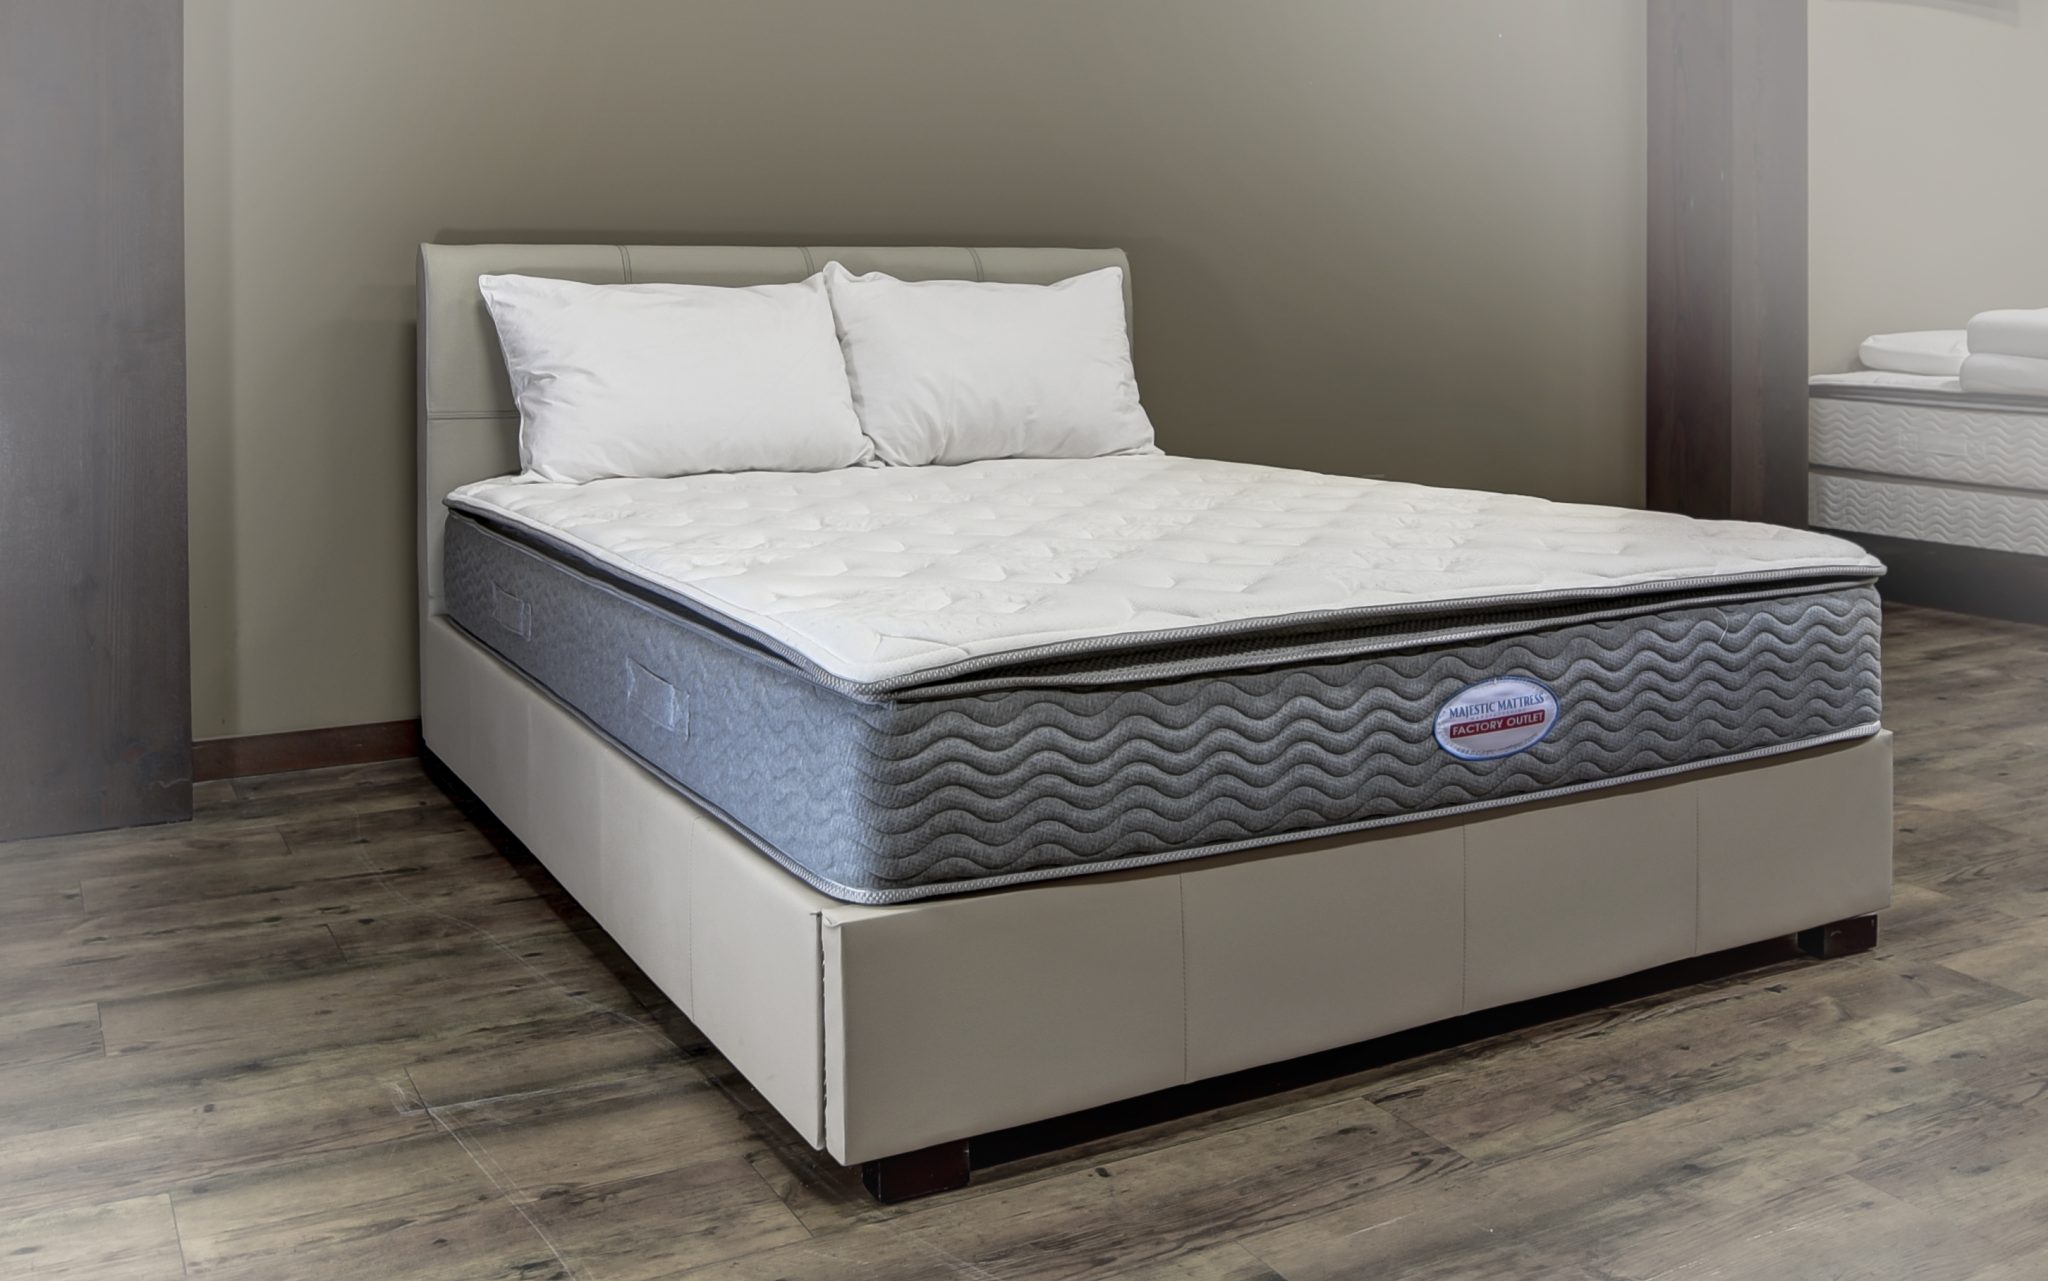 sleep mattress five pillow foam memory sunset topper zone country products